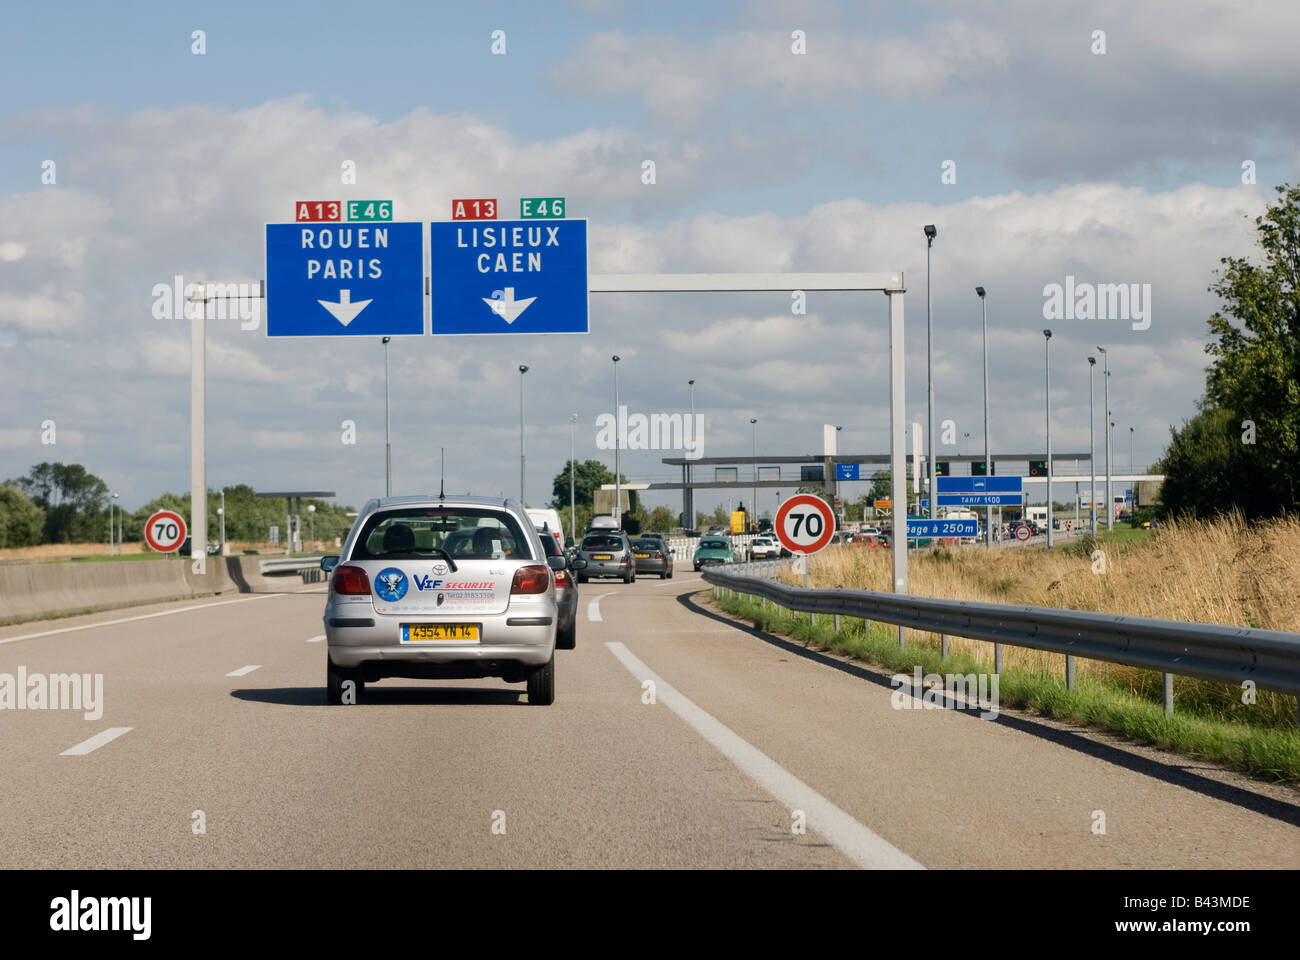 french autoroute sign photos french autoroute sign images alamy. Black Bedroom Furniture Sets. Home Design Ideas